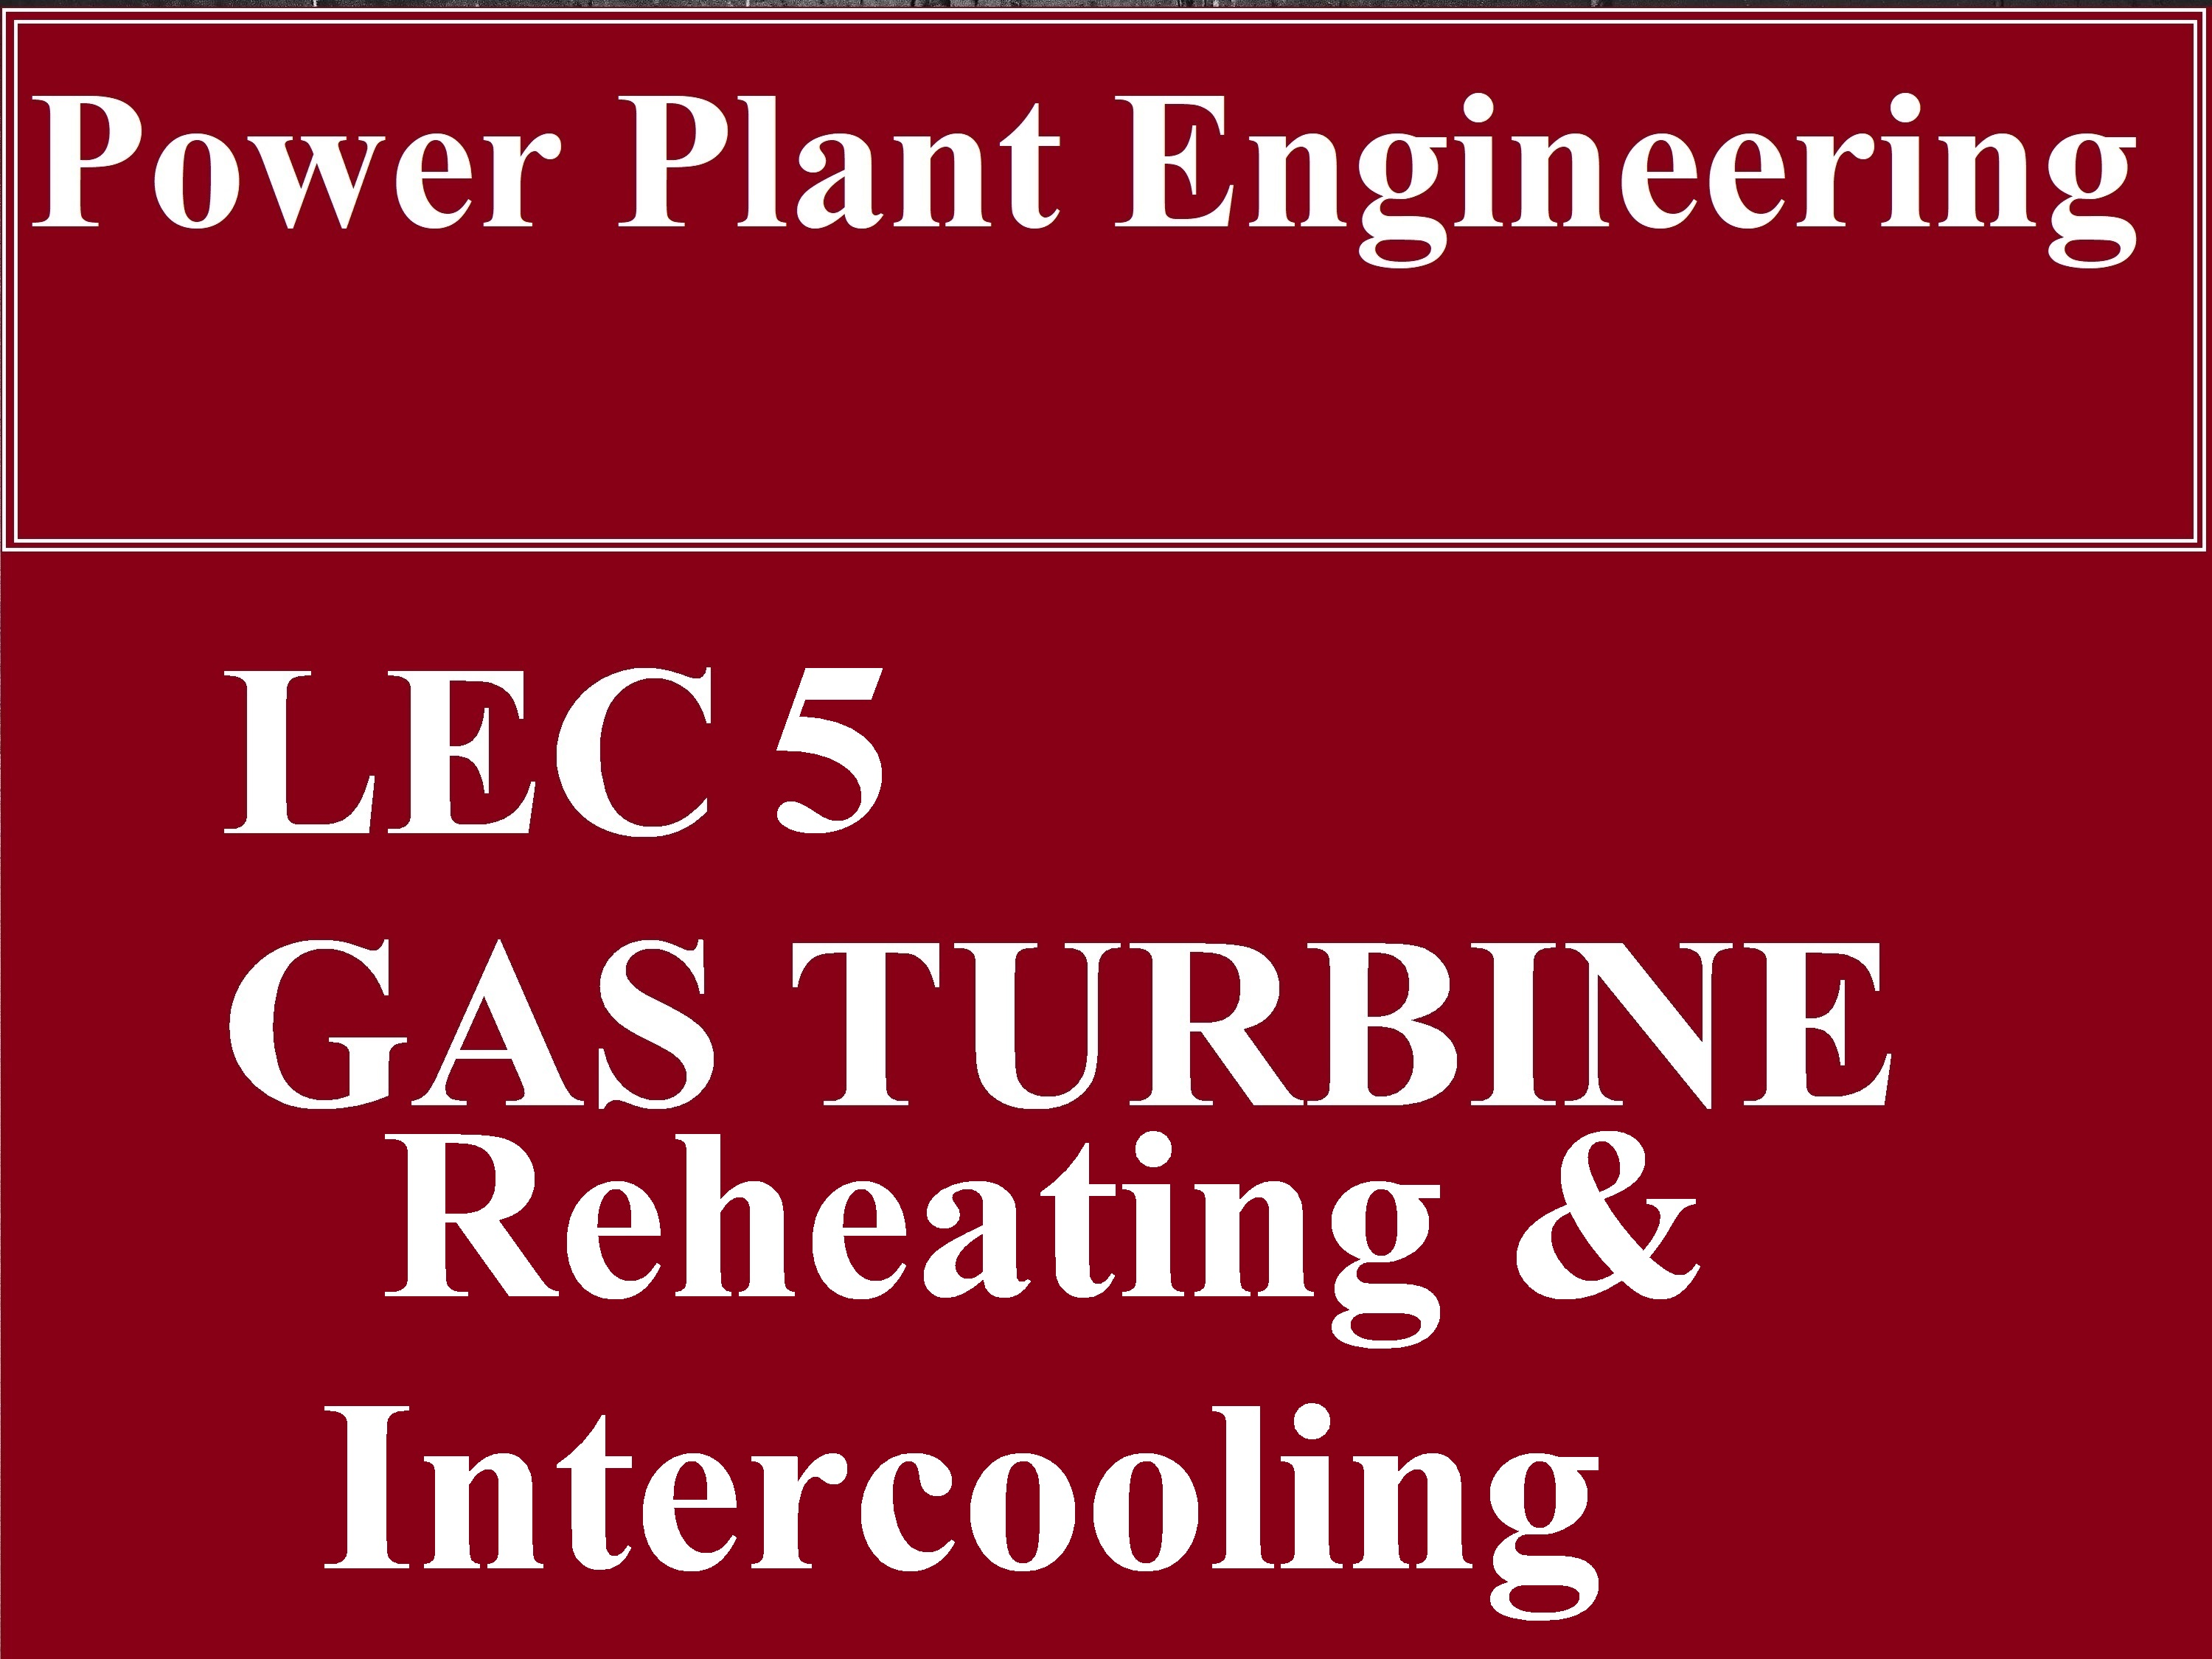 Lec 5 Power Plant (Gas Turbine Reheating and Intercooling)